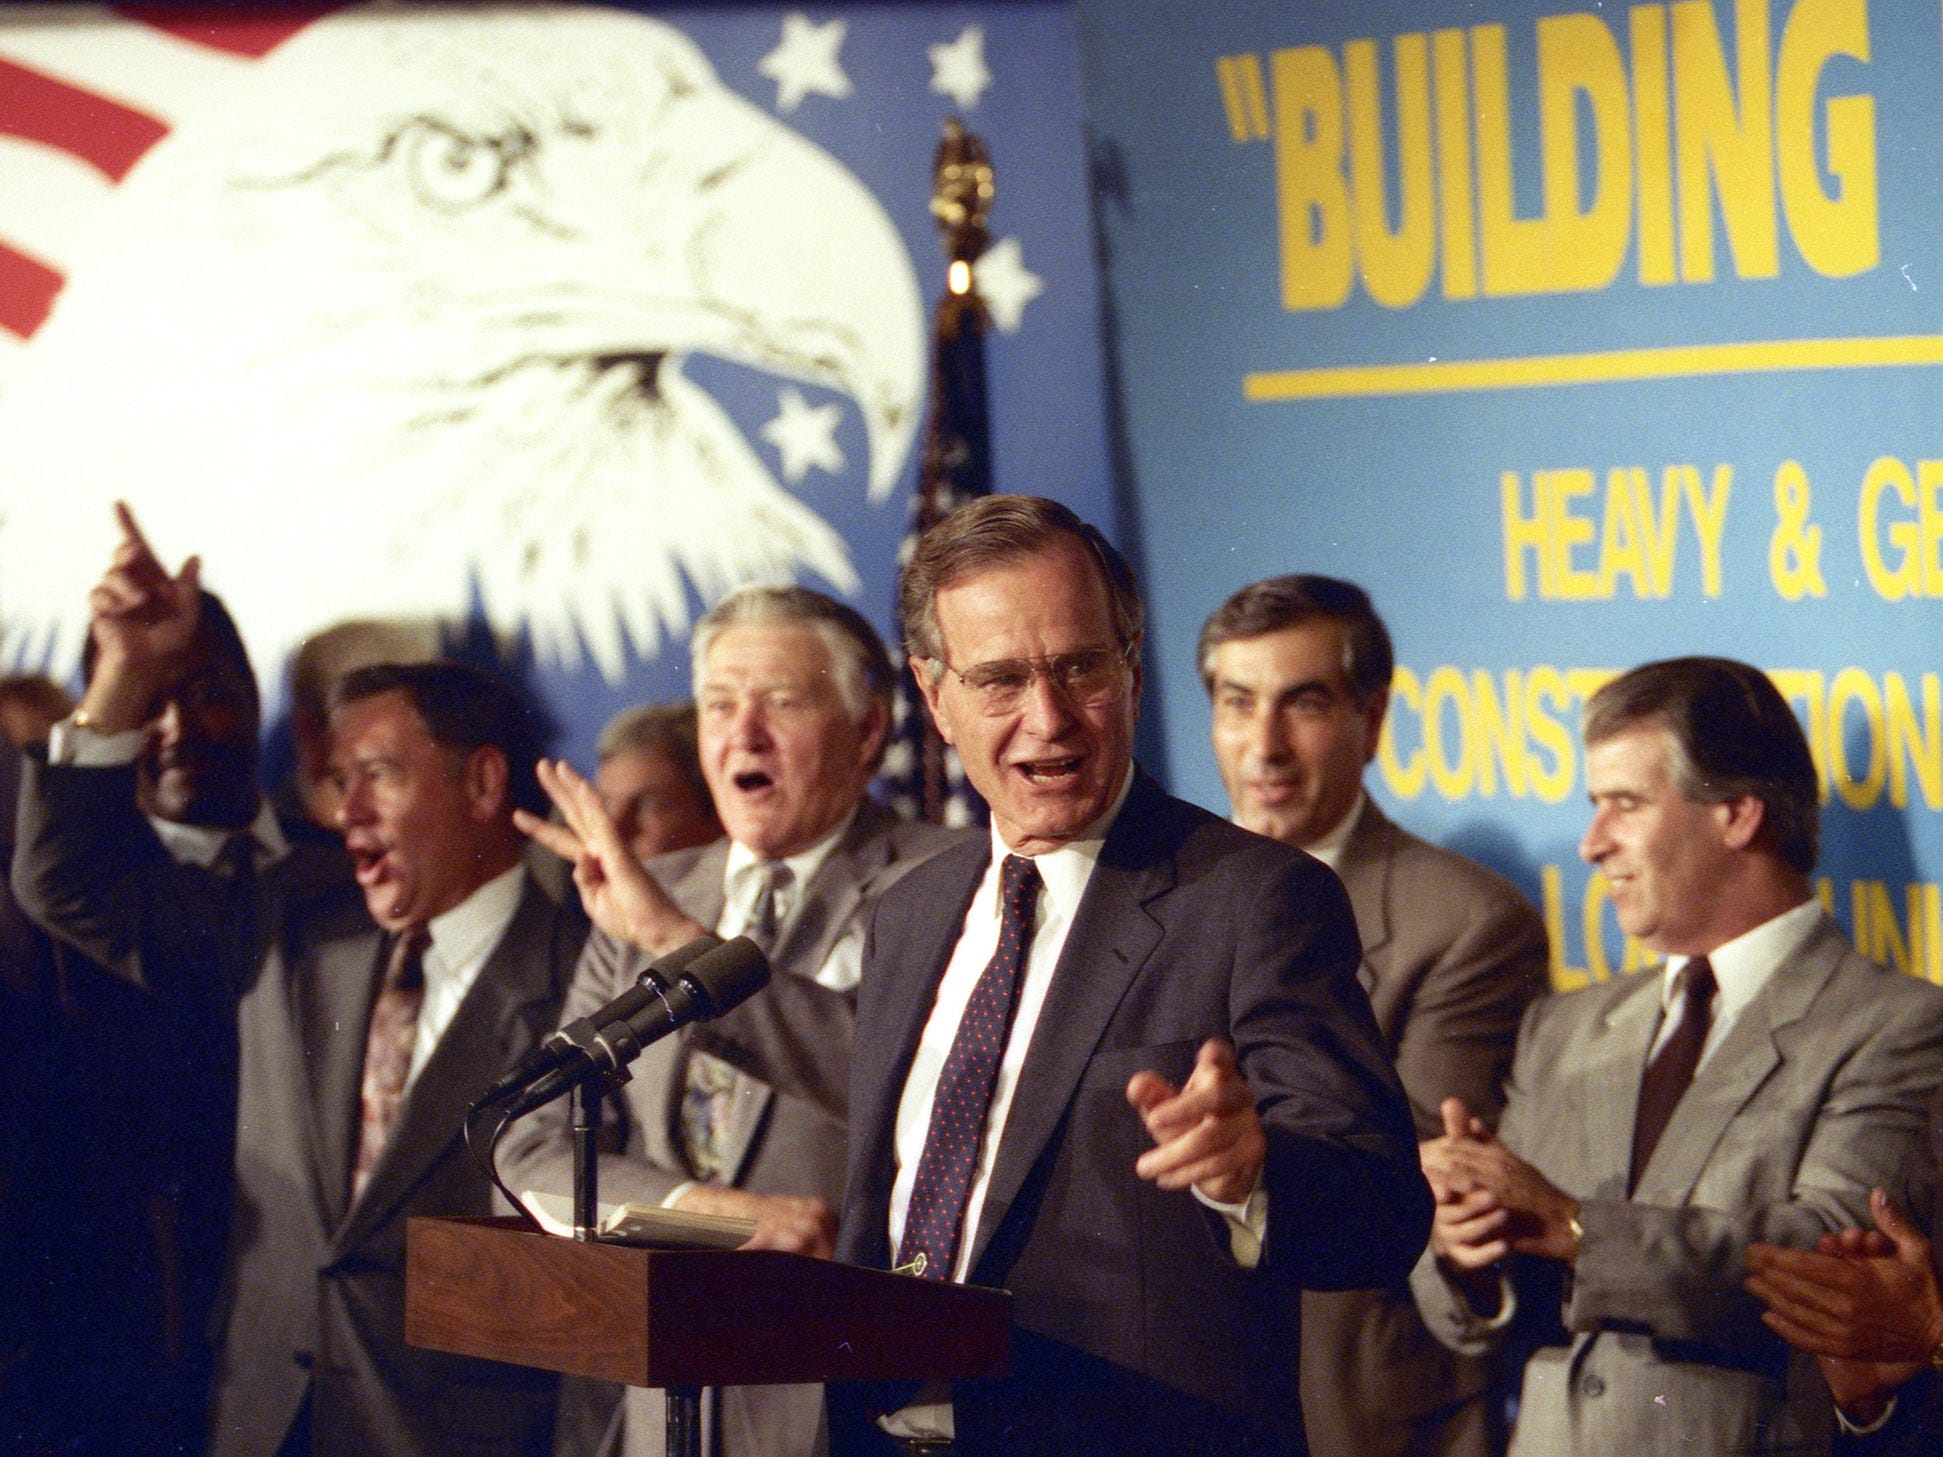 President George HW Bush speaks at the Laborers Union Local 472 of the Heavy and General Construction Workers in Newark, NJ, on September 30 1992.